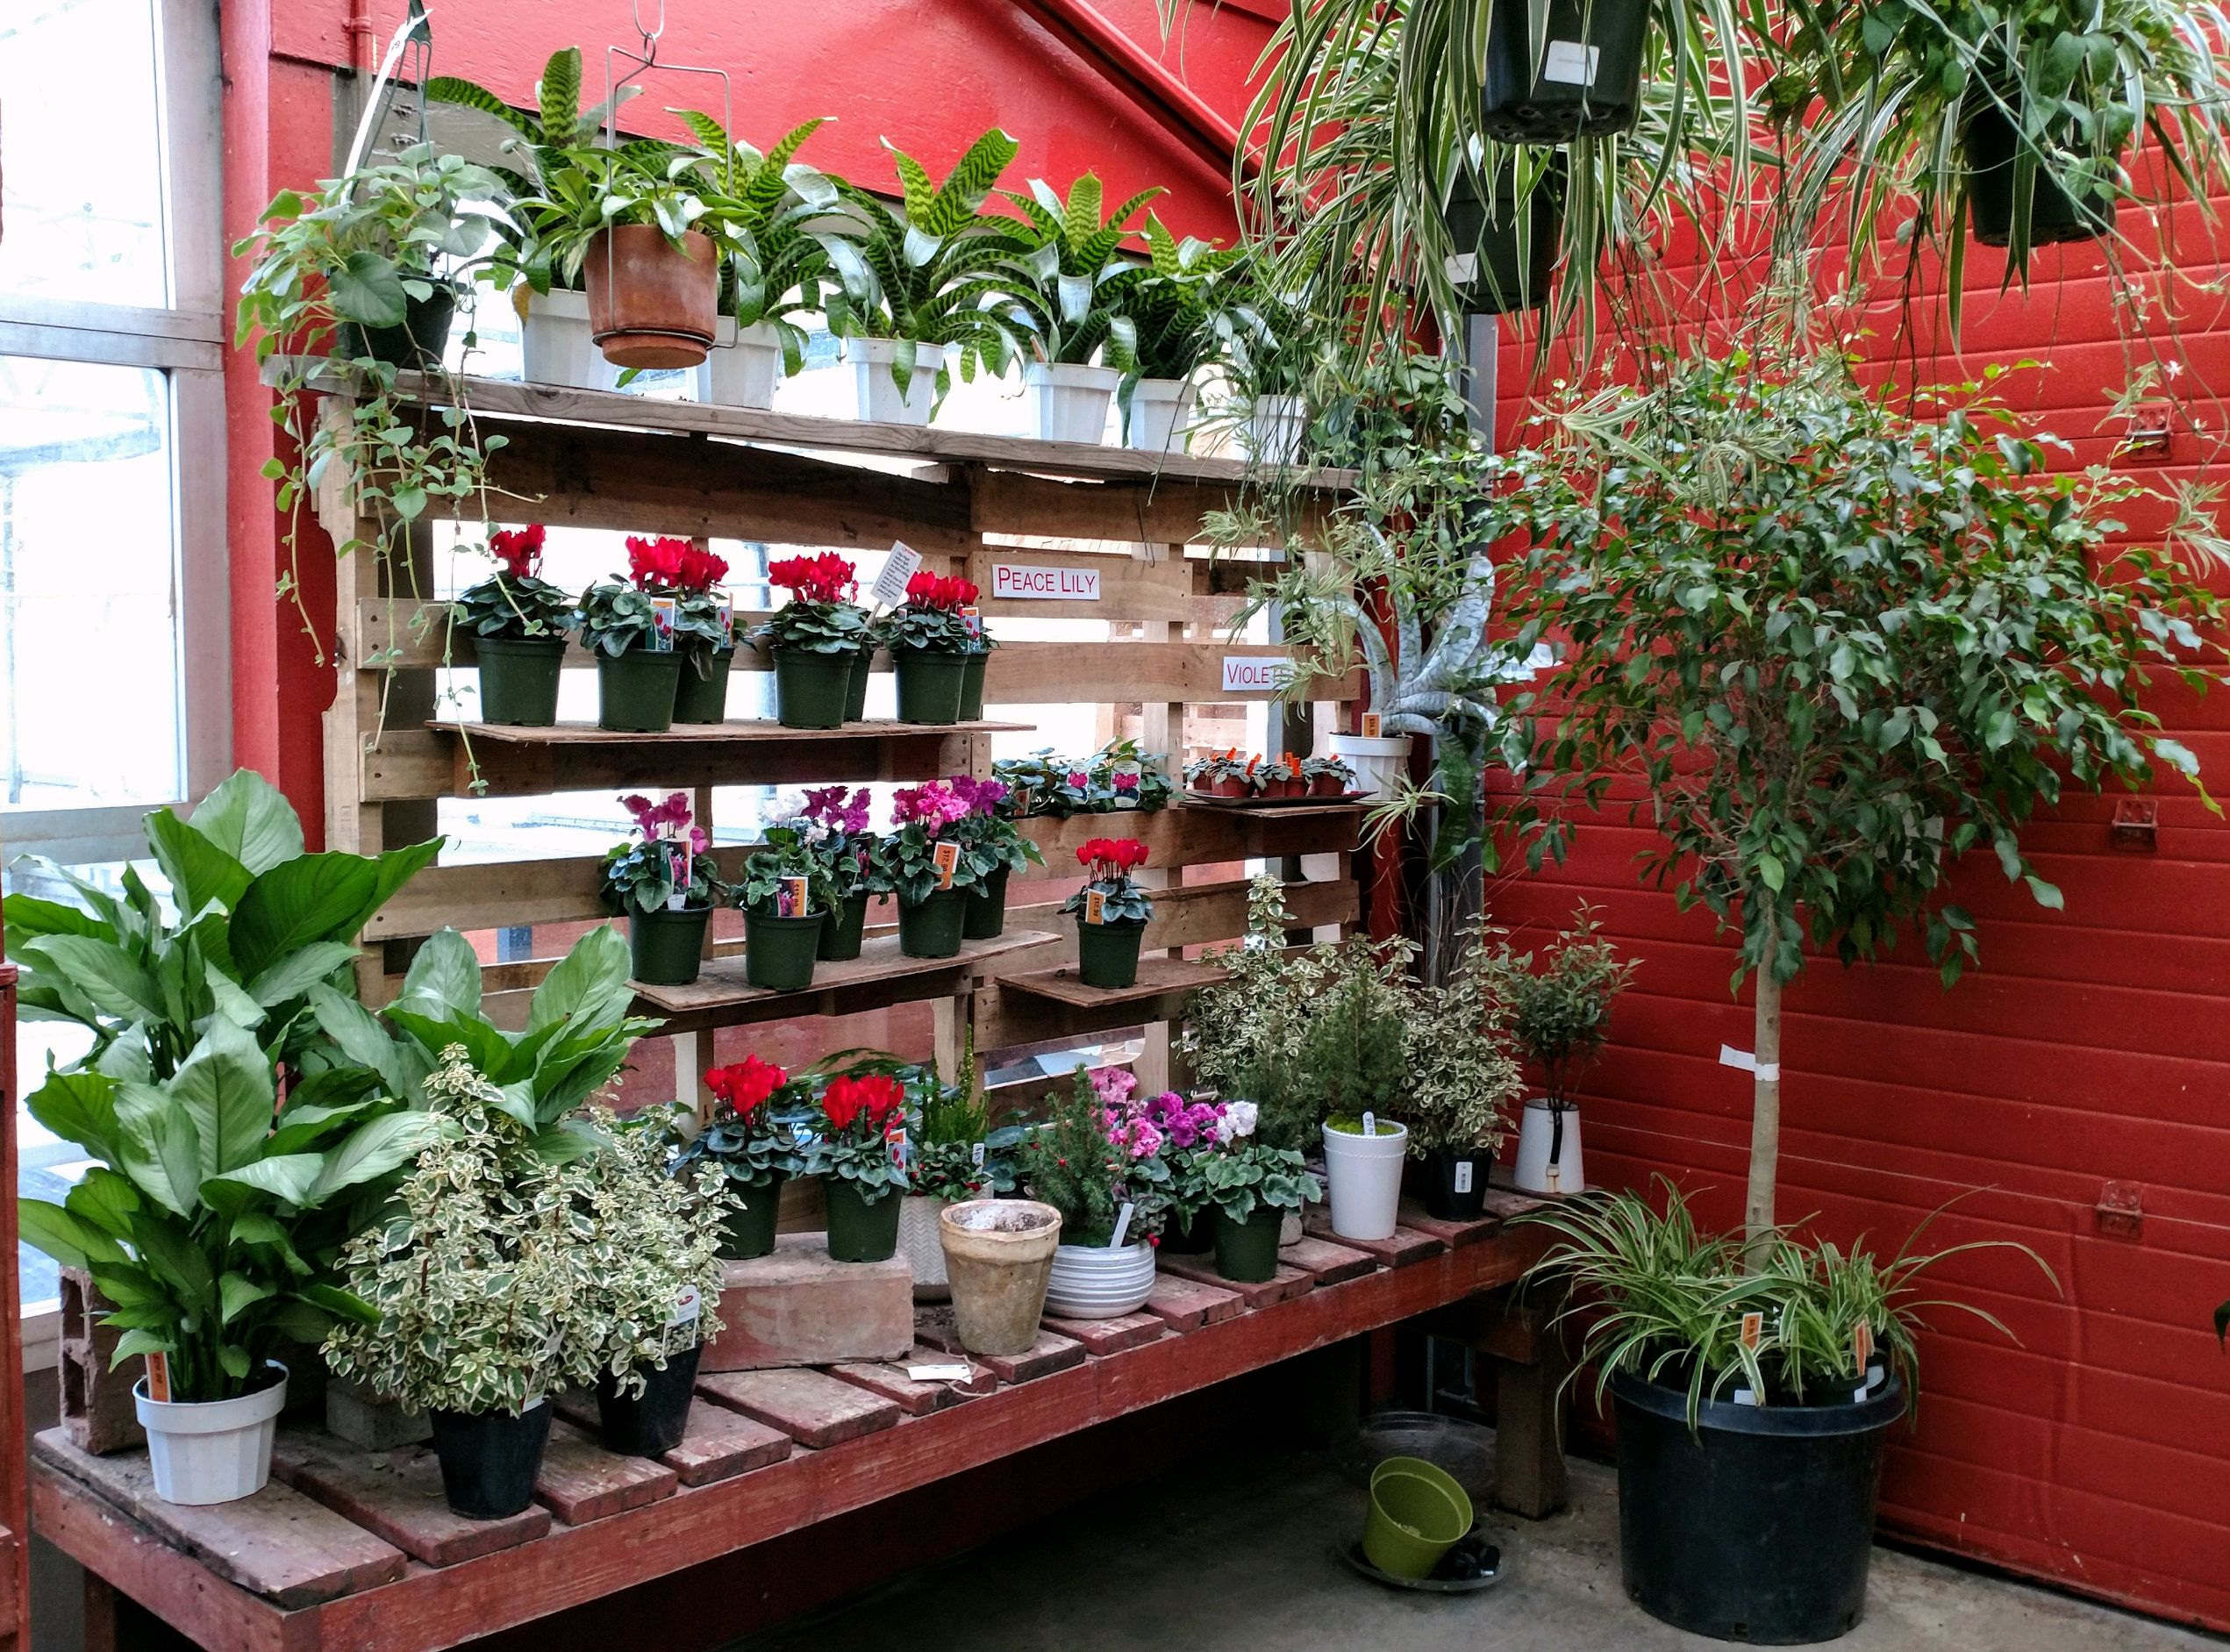 Spruce up your home with a new houseplant! New shipments come in weekly